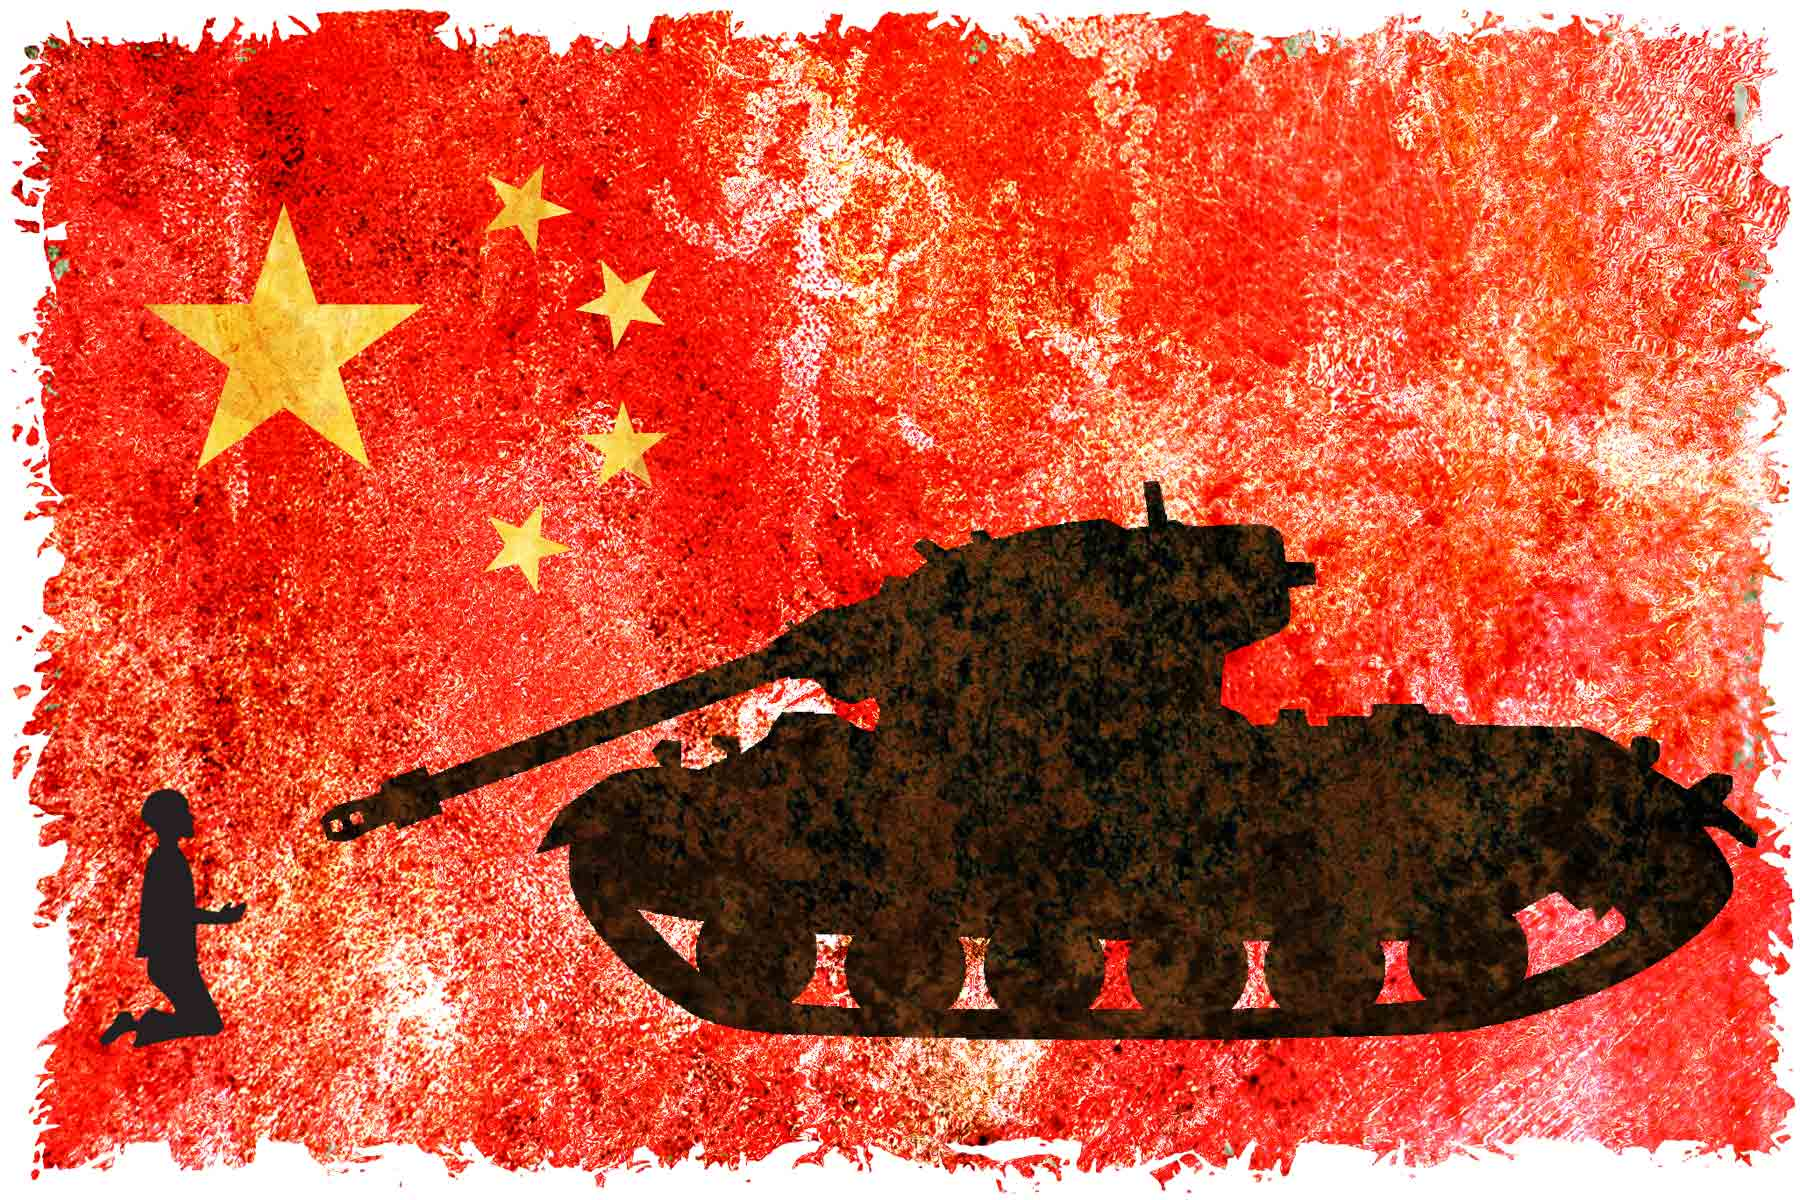 HASMATH: Red China's iron grip on power